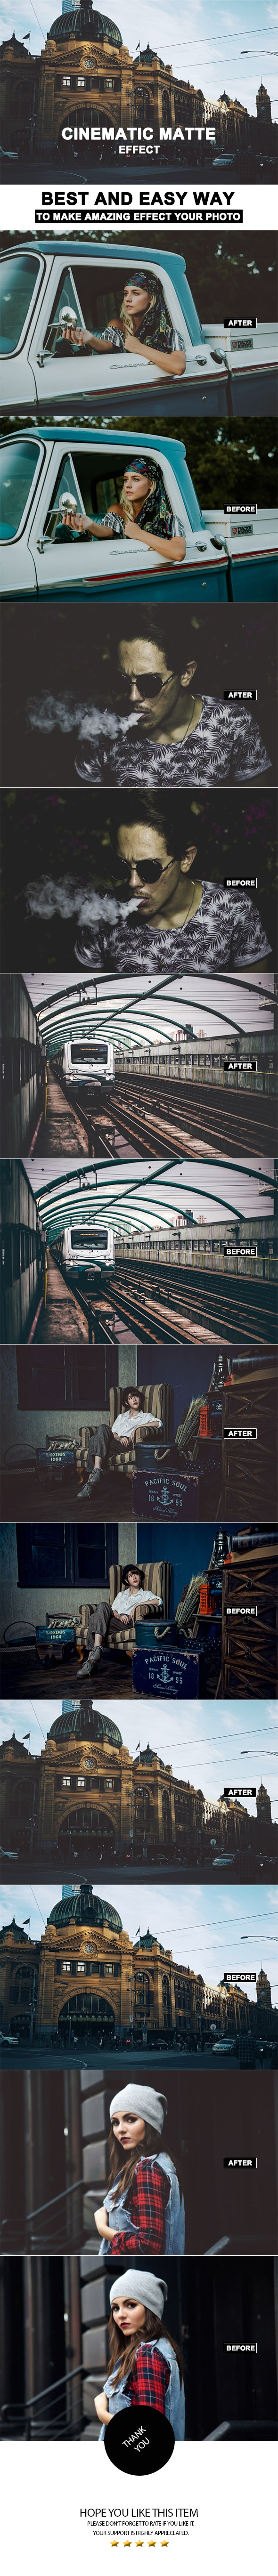 Cinematic Matte Effect - Photo Effects Actions